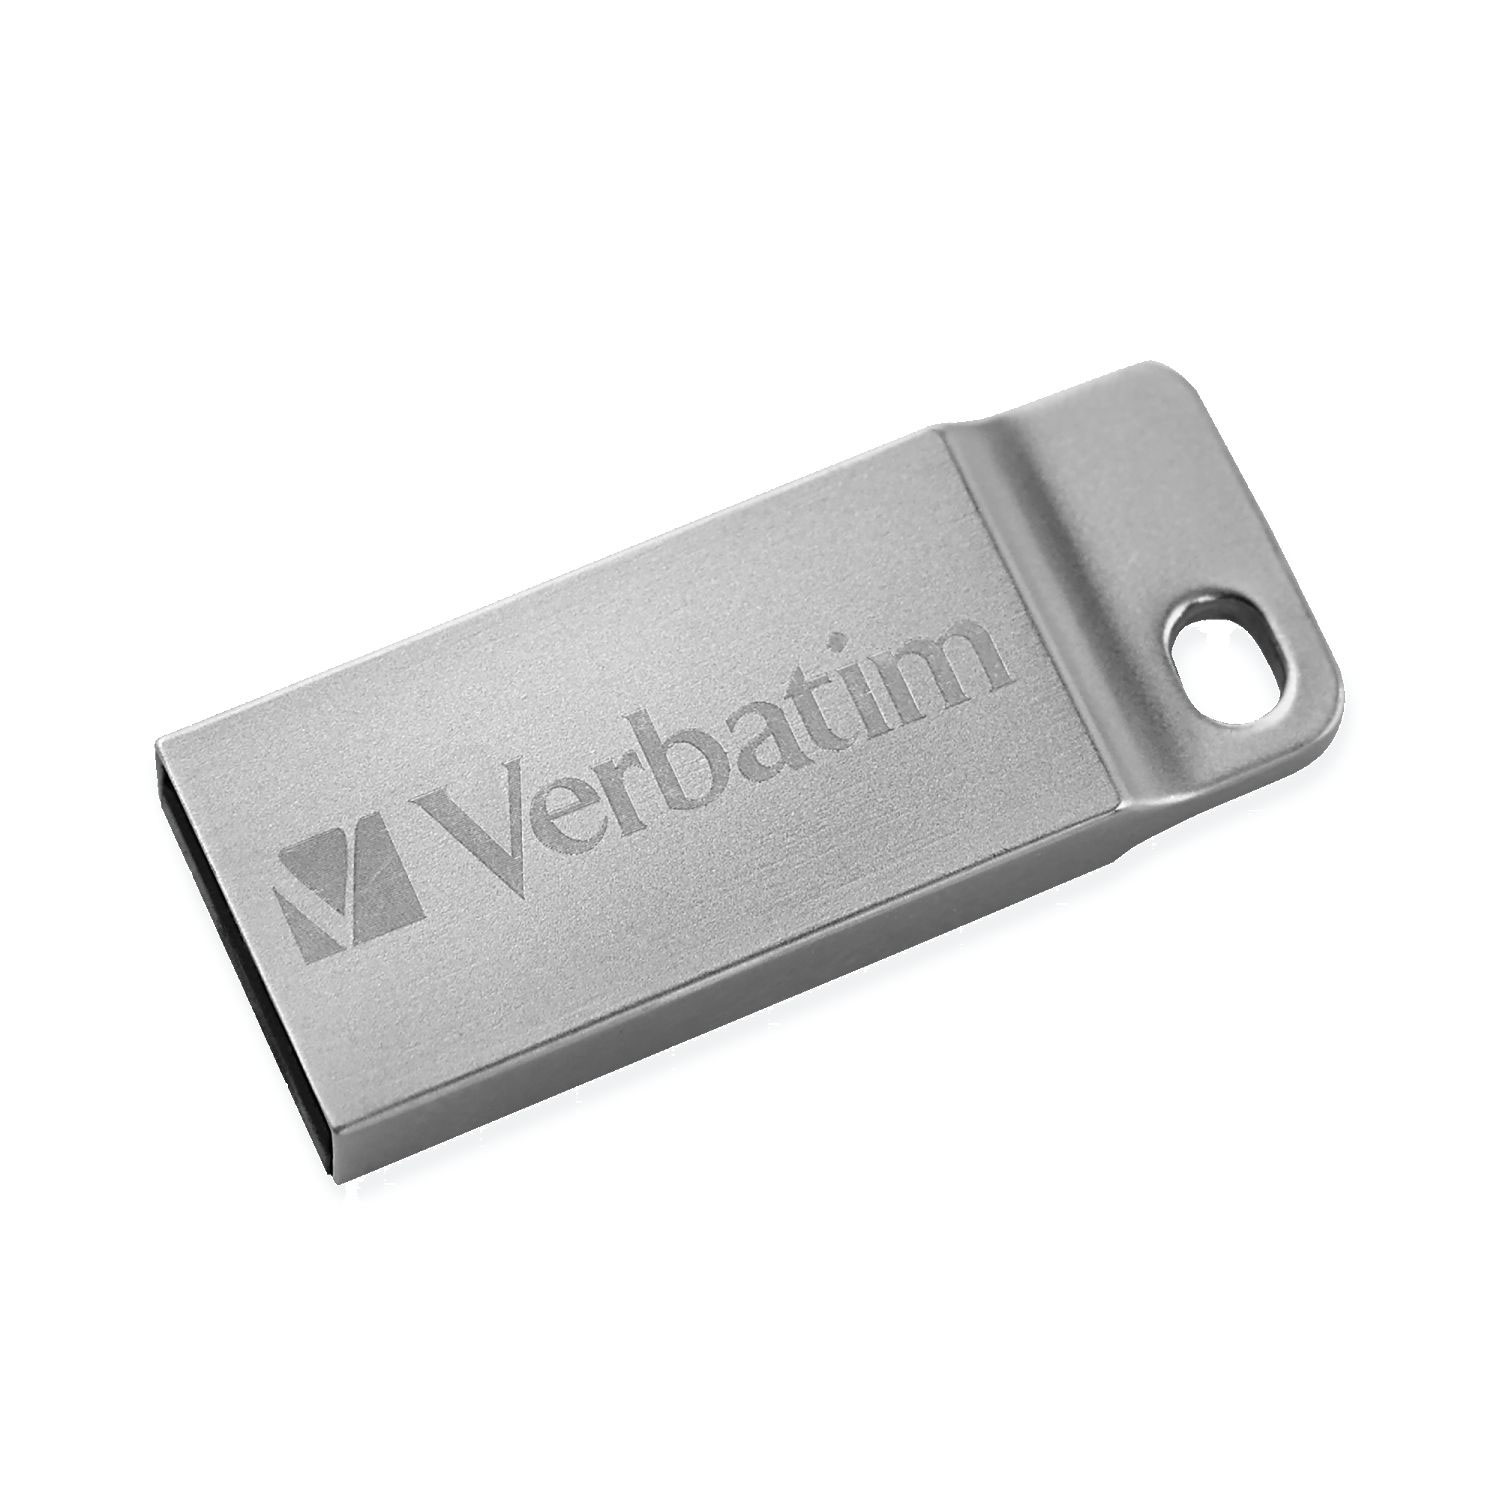 Verbatim Falsh Drive, Metal Executive USB,16GB, Silver